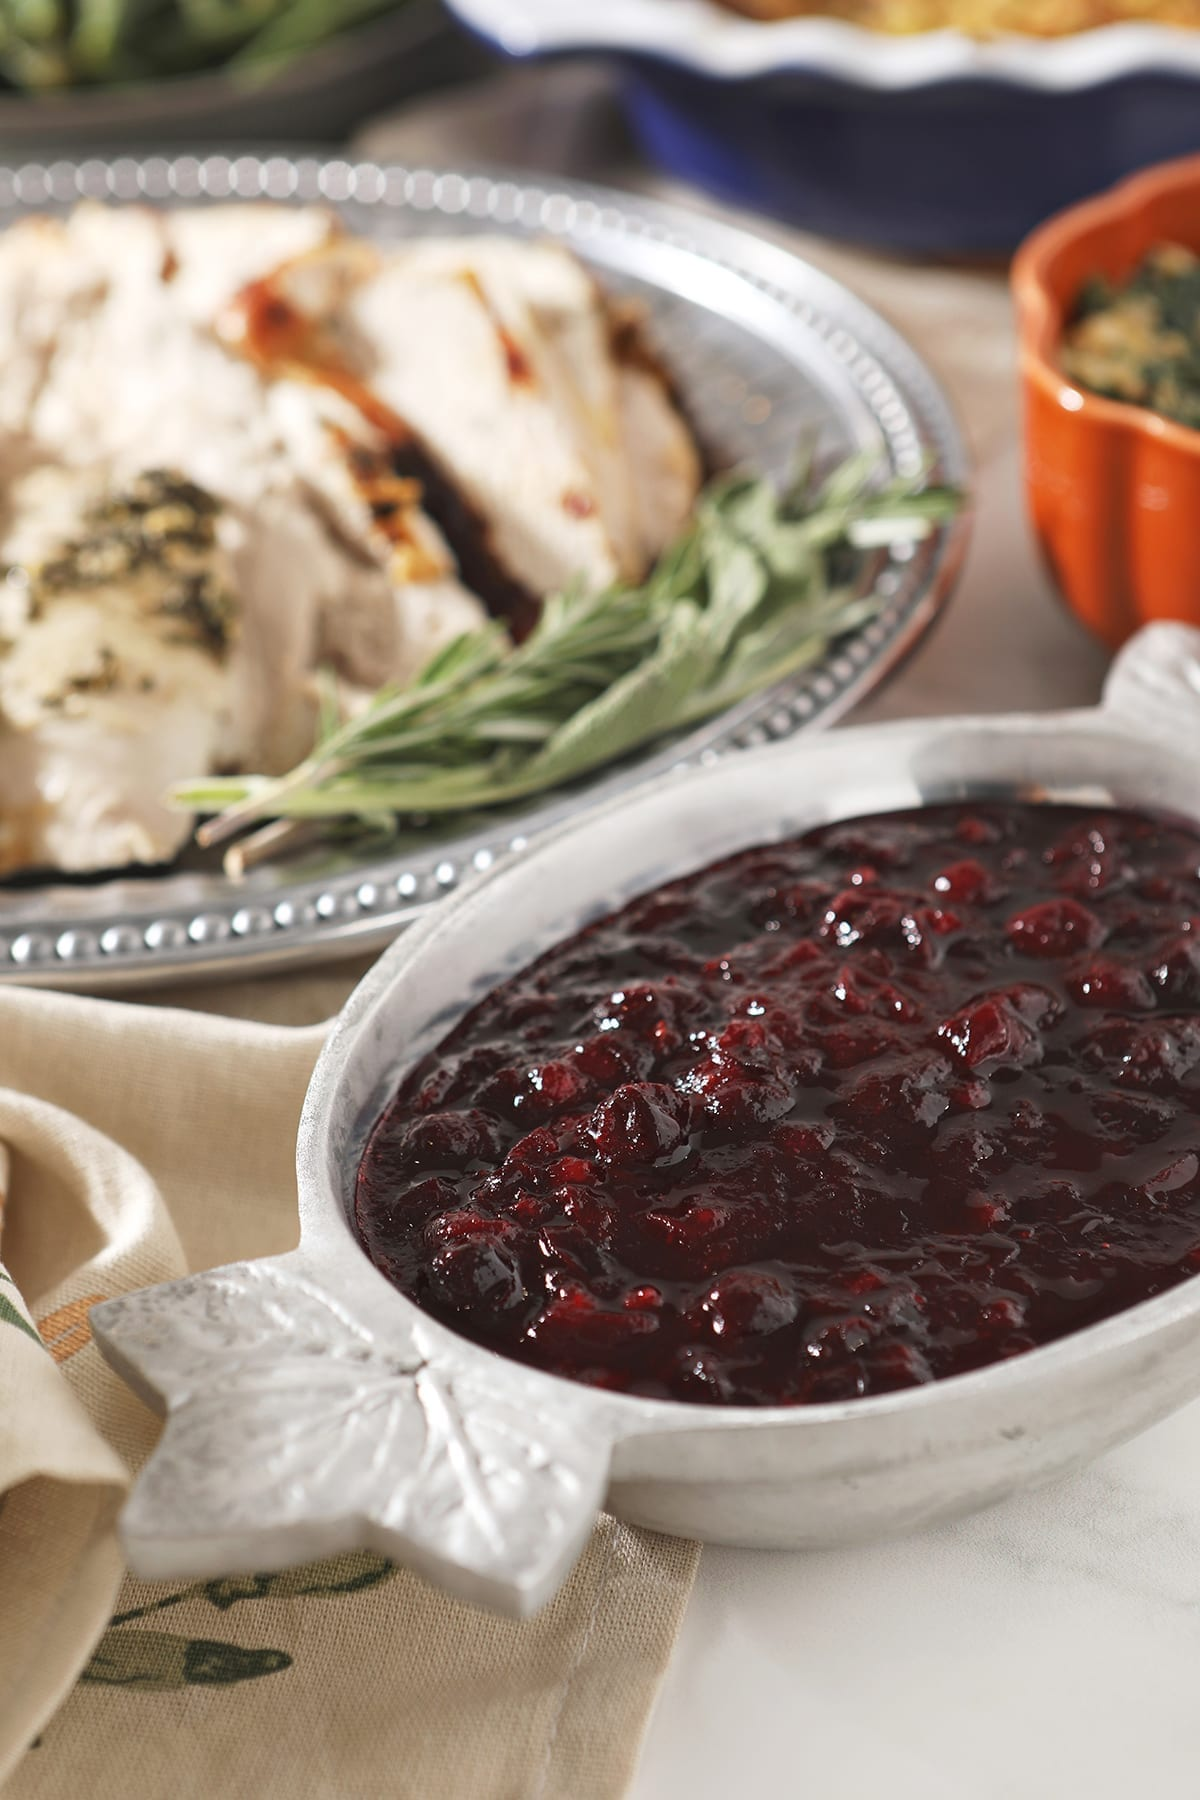 How To Make Spiced Cranberry Sauce With Rum For The Holidays